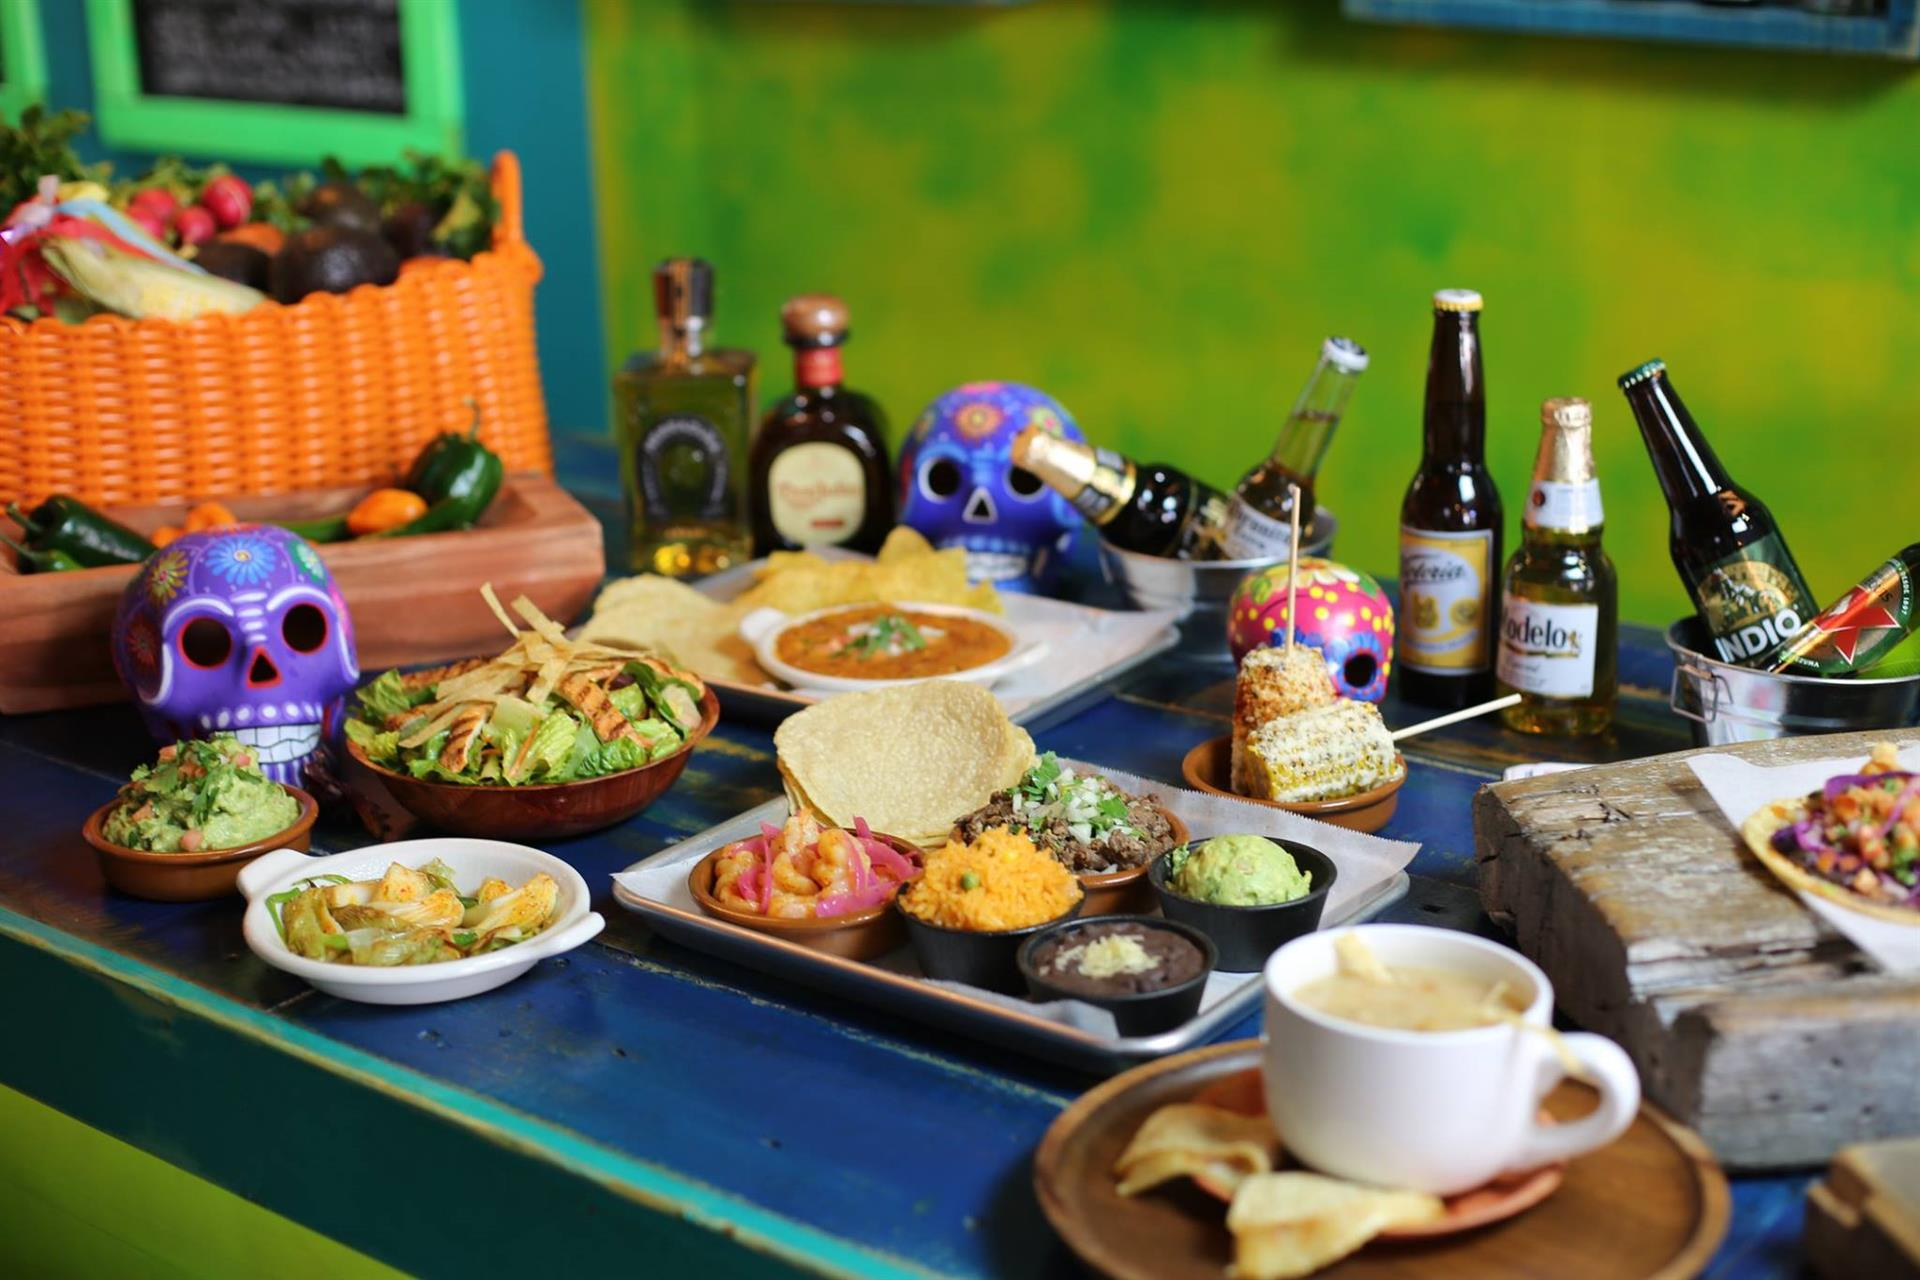 assortment of food and alcoholic drinks on a table